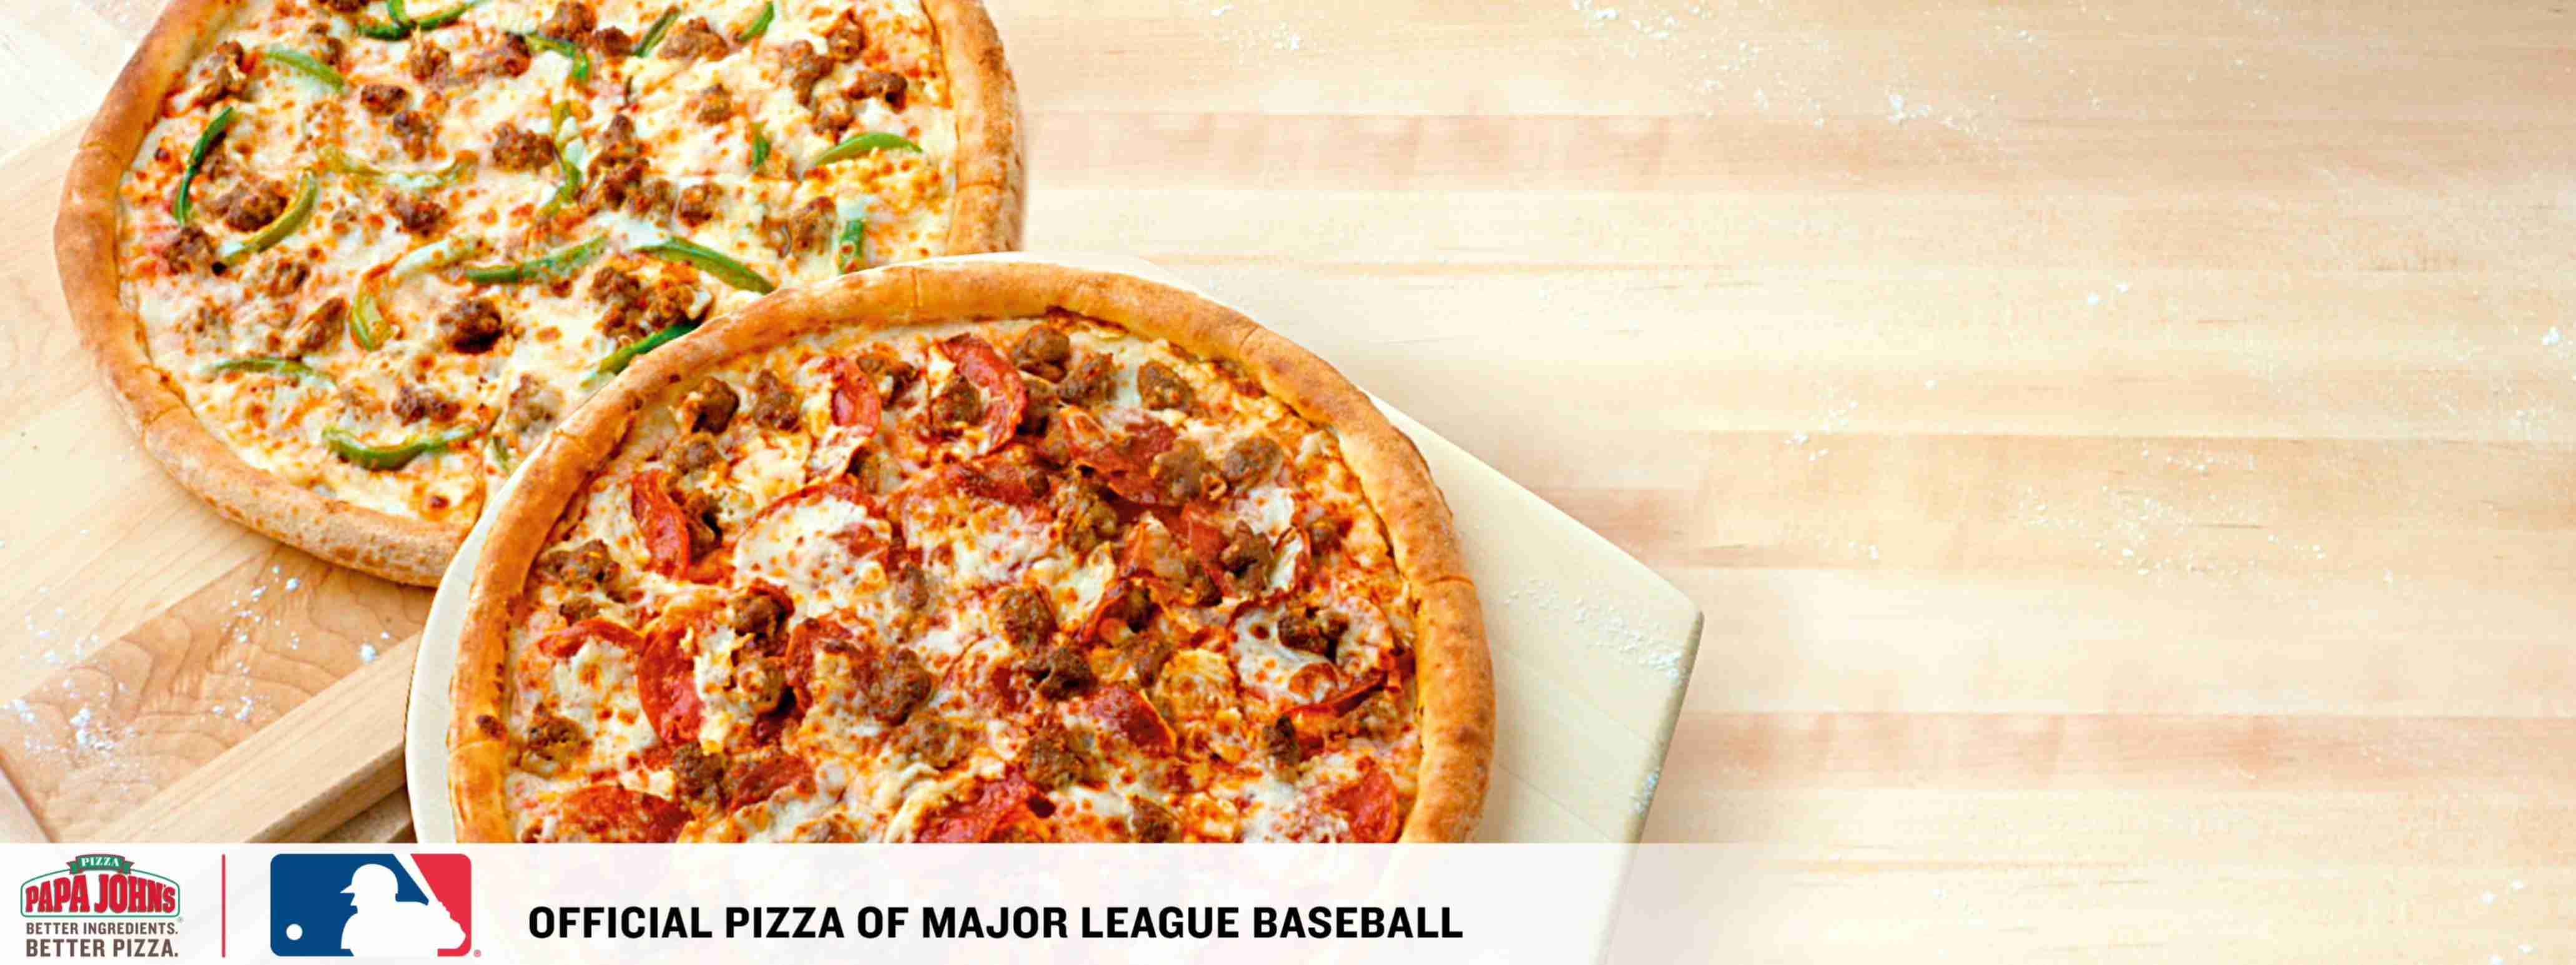 Papa Johns: Any Large Pizza up to 5 Toppings OR Specialty - $9.99, 40% off Regular menu price online orders and more (YMMV)